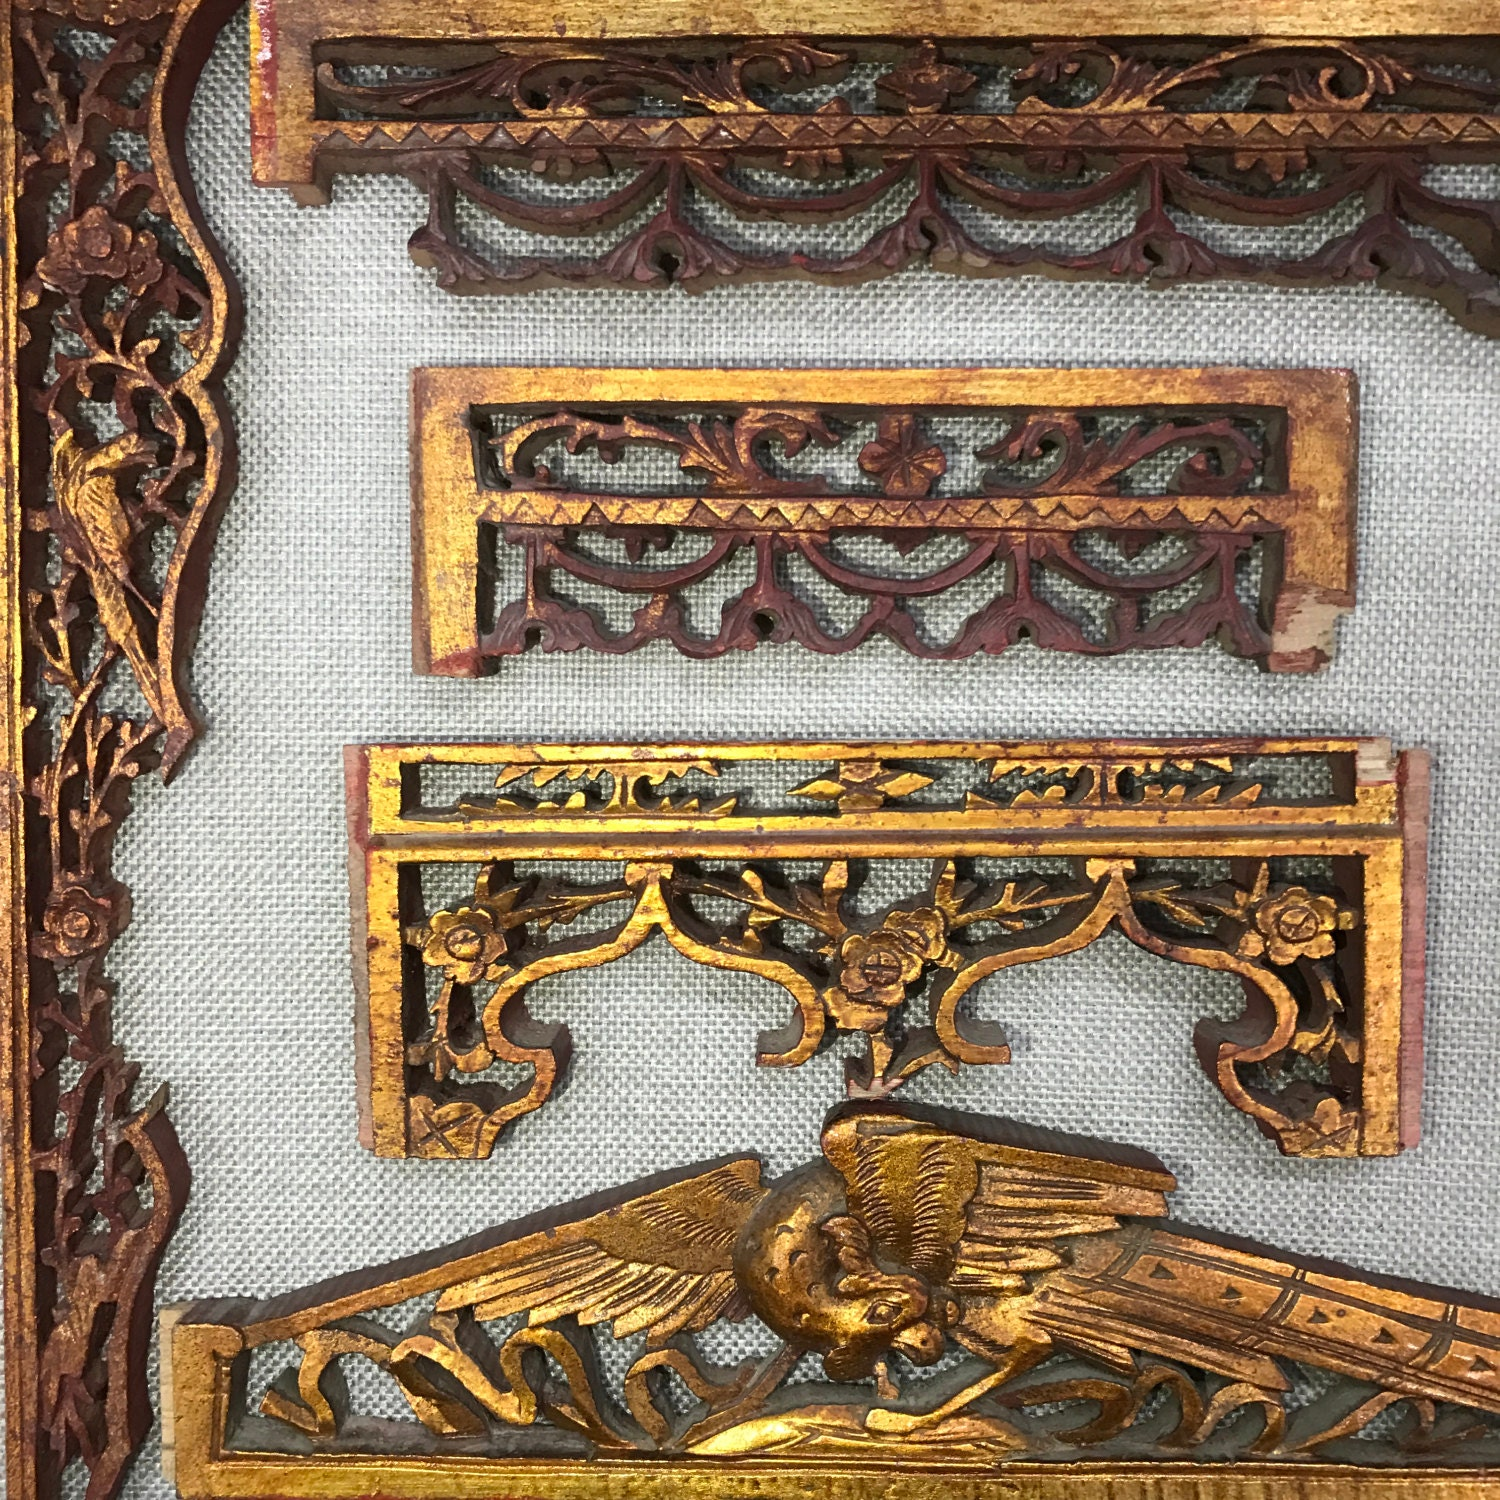 Antique Carved Wood Panels wholesale, sell in bulk total 5 PCS low price.  Chinese - Carved Wood Panel Etsy